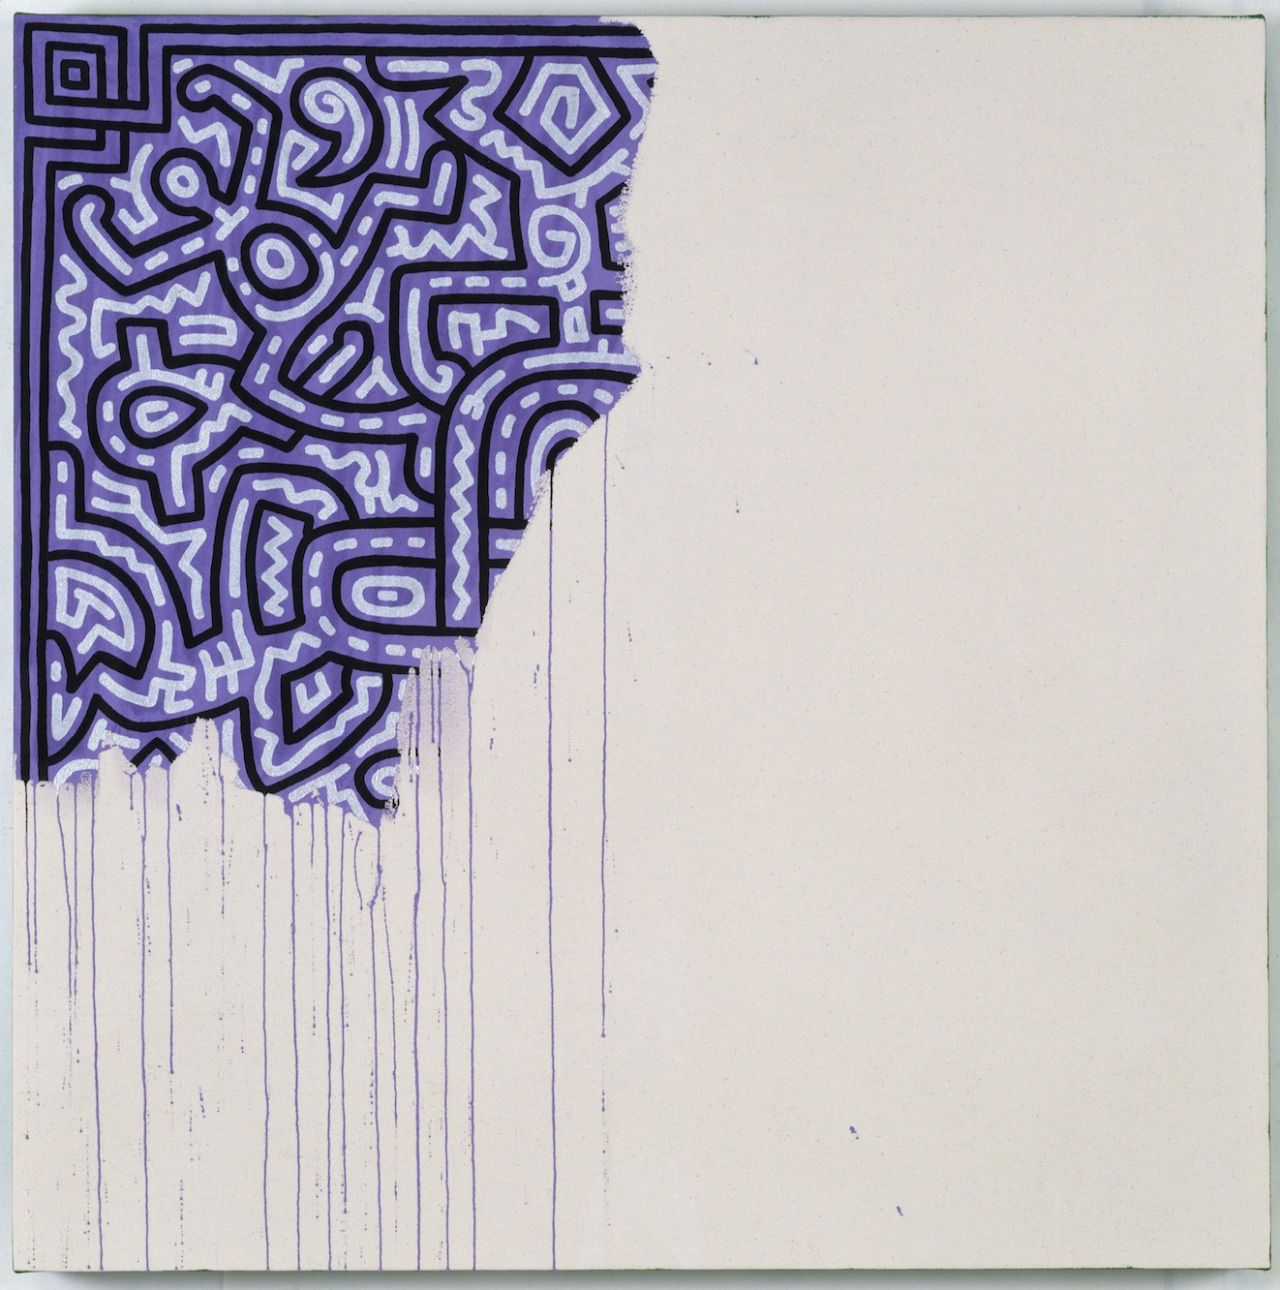 """Keith Haring - Unfinished Painting (1989) """"Keith Haring, famous for his playful, street-inspired patterns and figures, died from complications related to AIDS in 1990, at age 31. This painting, """"Unfinished Painting,"""" was painted in 1989, and is a self-portrait. Haring knew that he would never have the time to complete all the work that he wanted to do."""""""